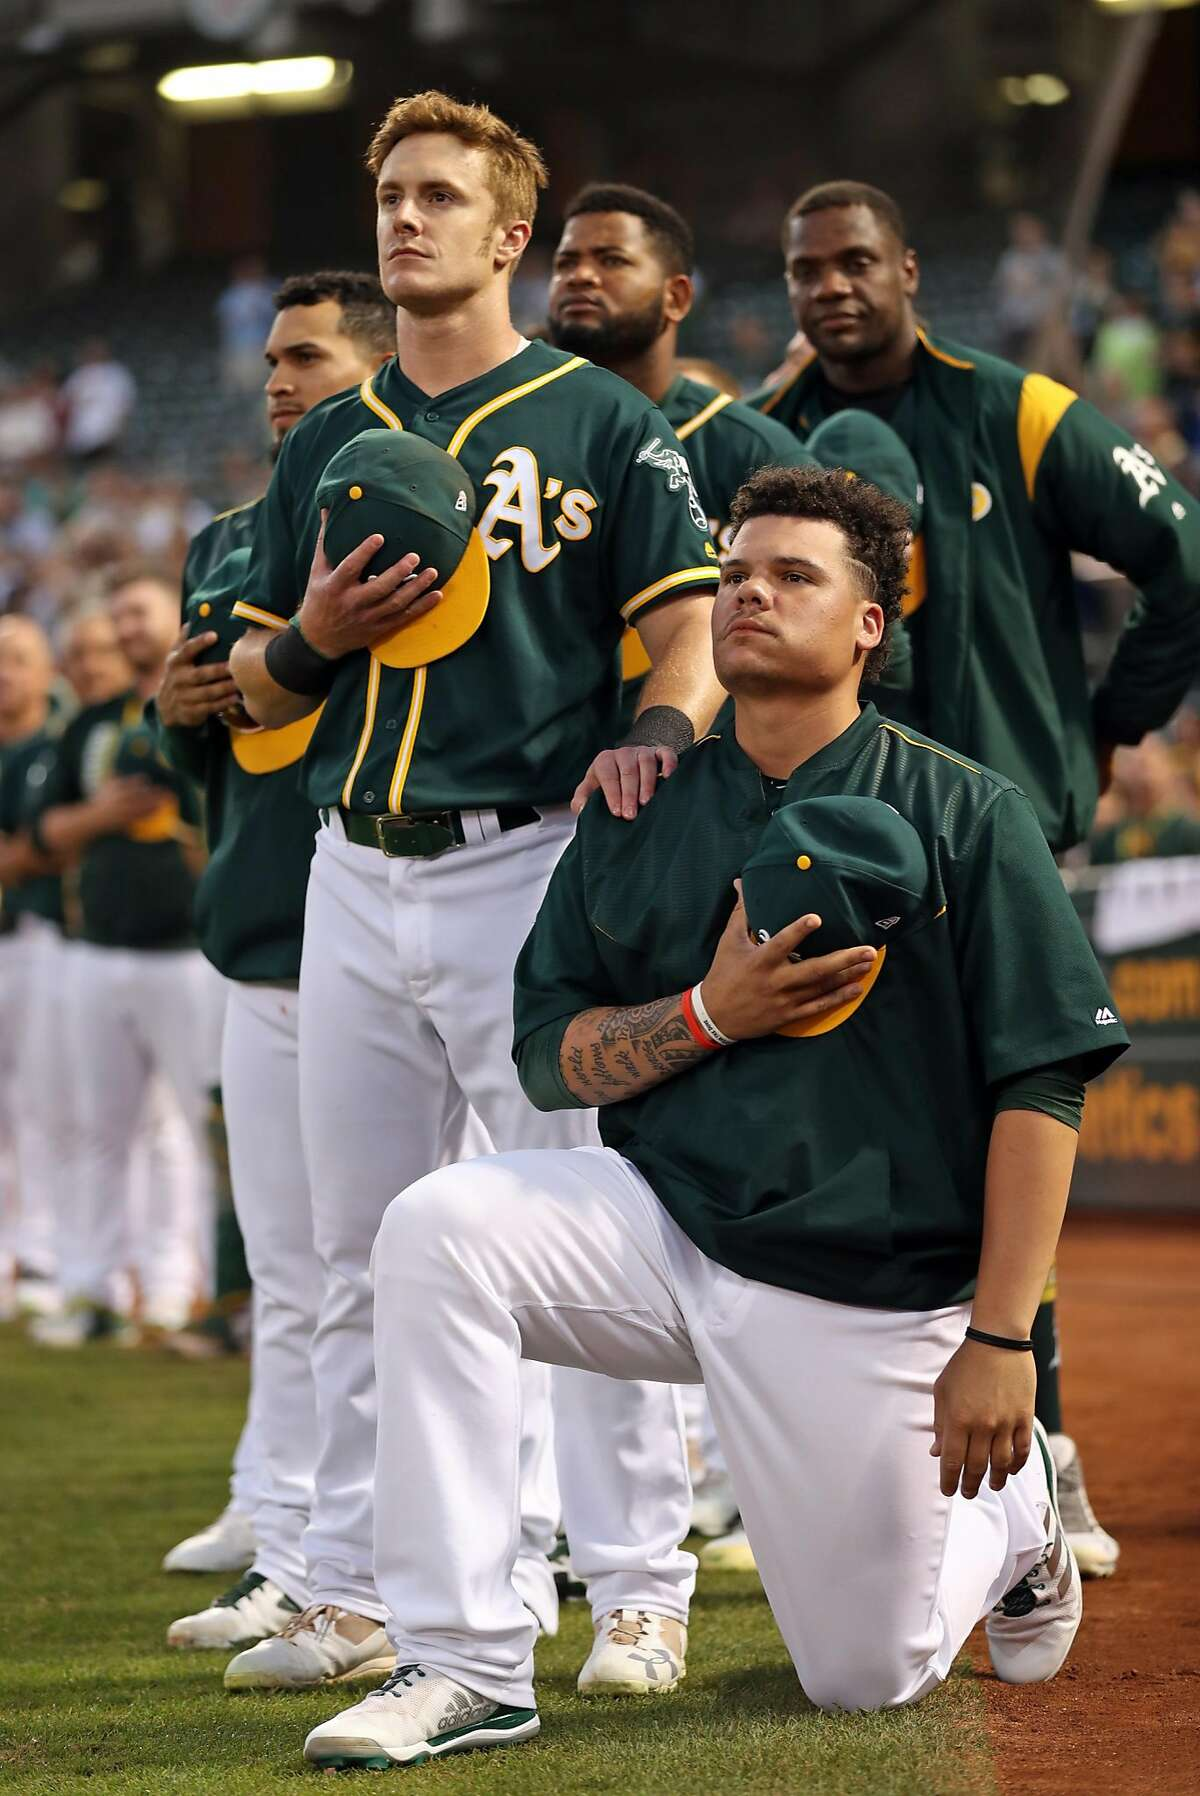 Oakland Athletics' Bruce Maxwell kneels during the National Anthem as teammate, Mark Canha, flanks him before A's play Seattle Mariners' during MLB game at Oakland Coliseum in Oakland, Calif., on Tuesday, September 26, 2017.